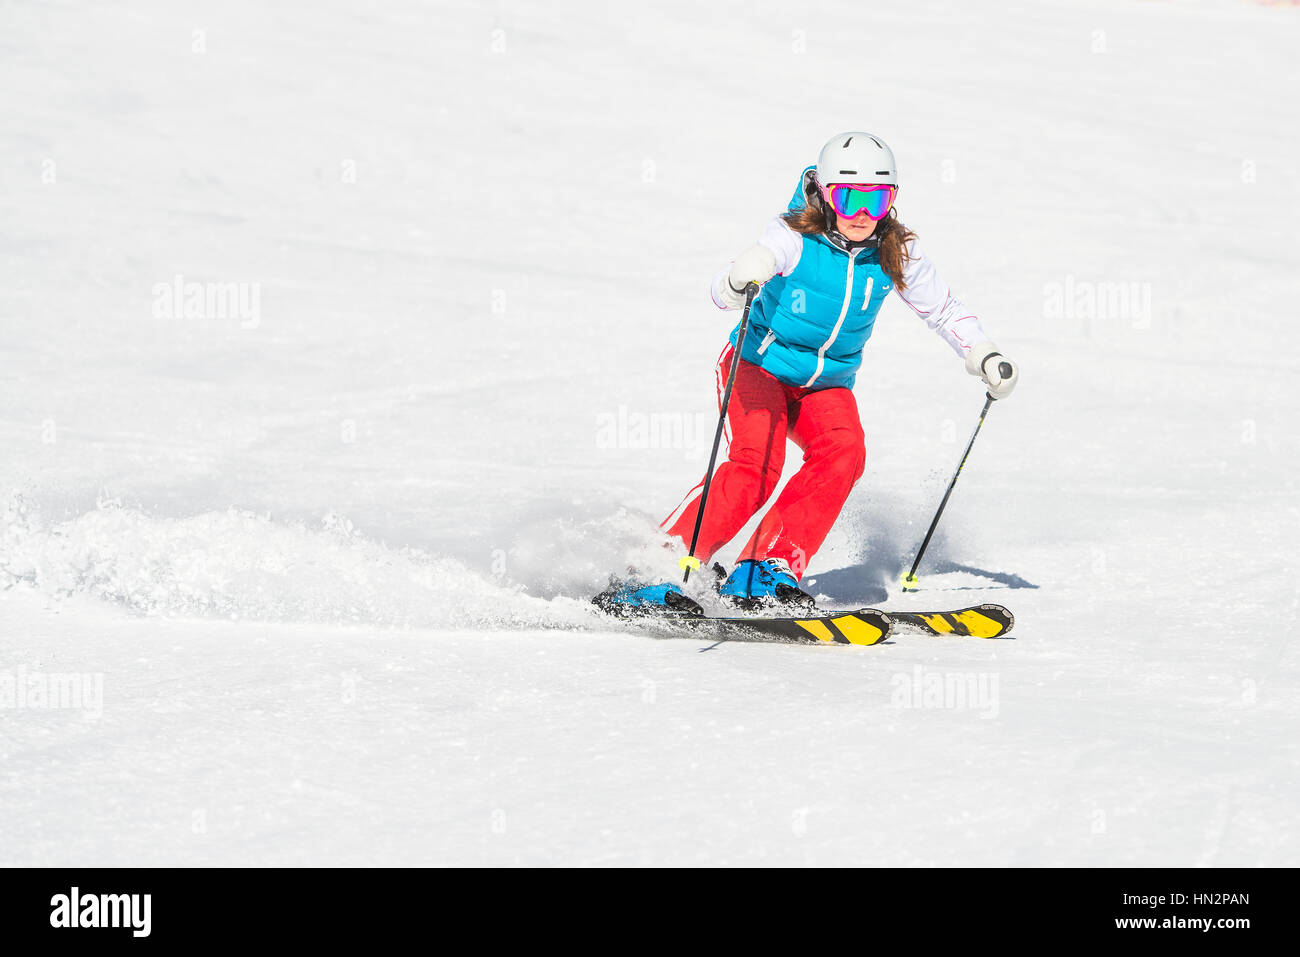 Girl skier with good technique while ago slalom curves - Stock Image